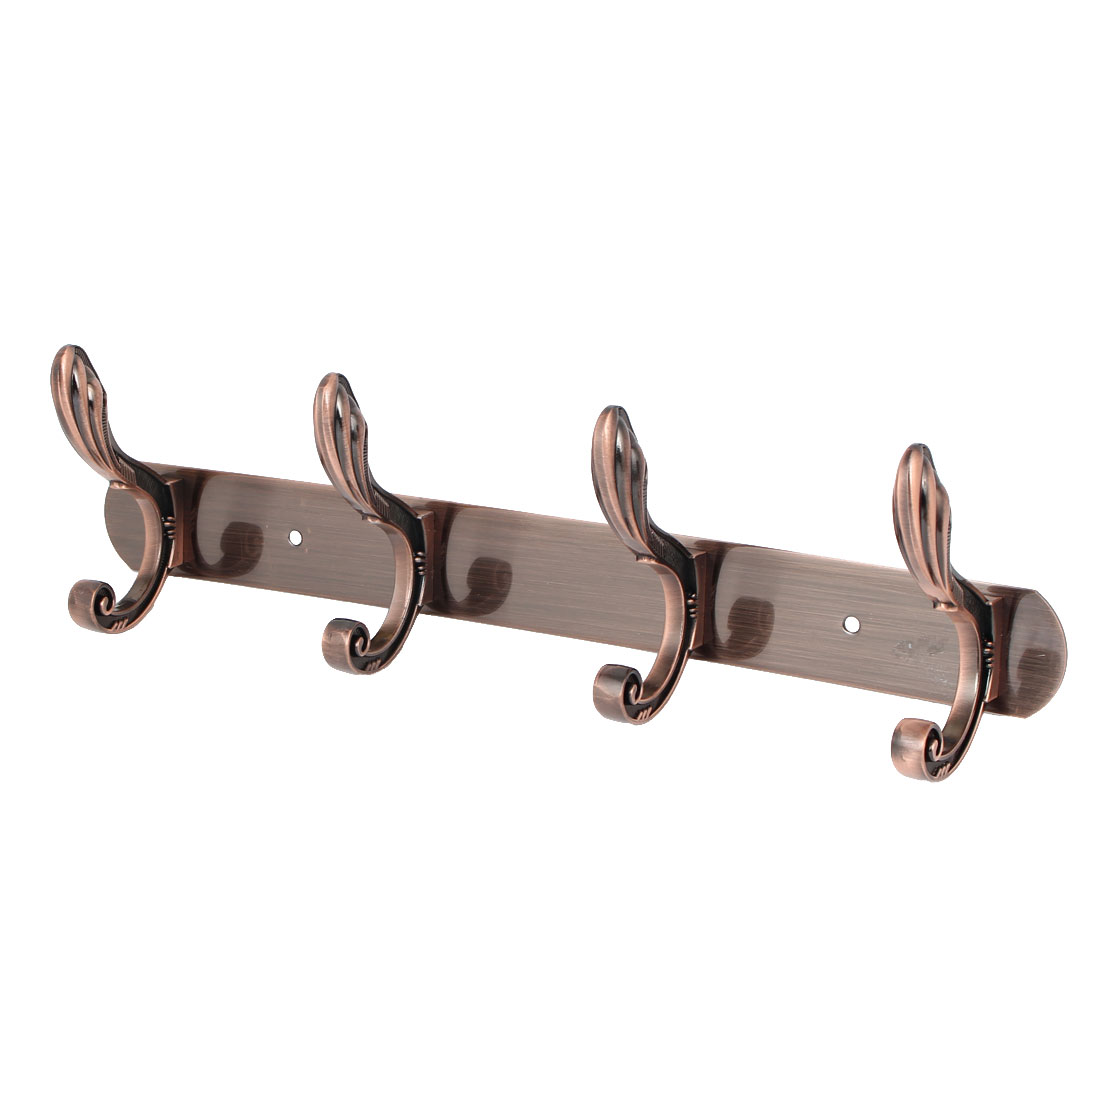 Bedroom Coat Hanging Metal Rail Bar 4 Double Hook Wall Hanger Copper Tone 350x40x2mm